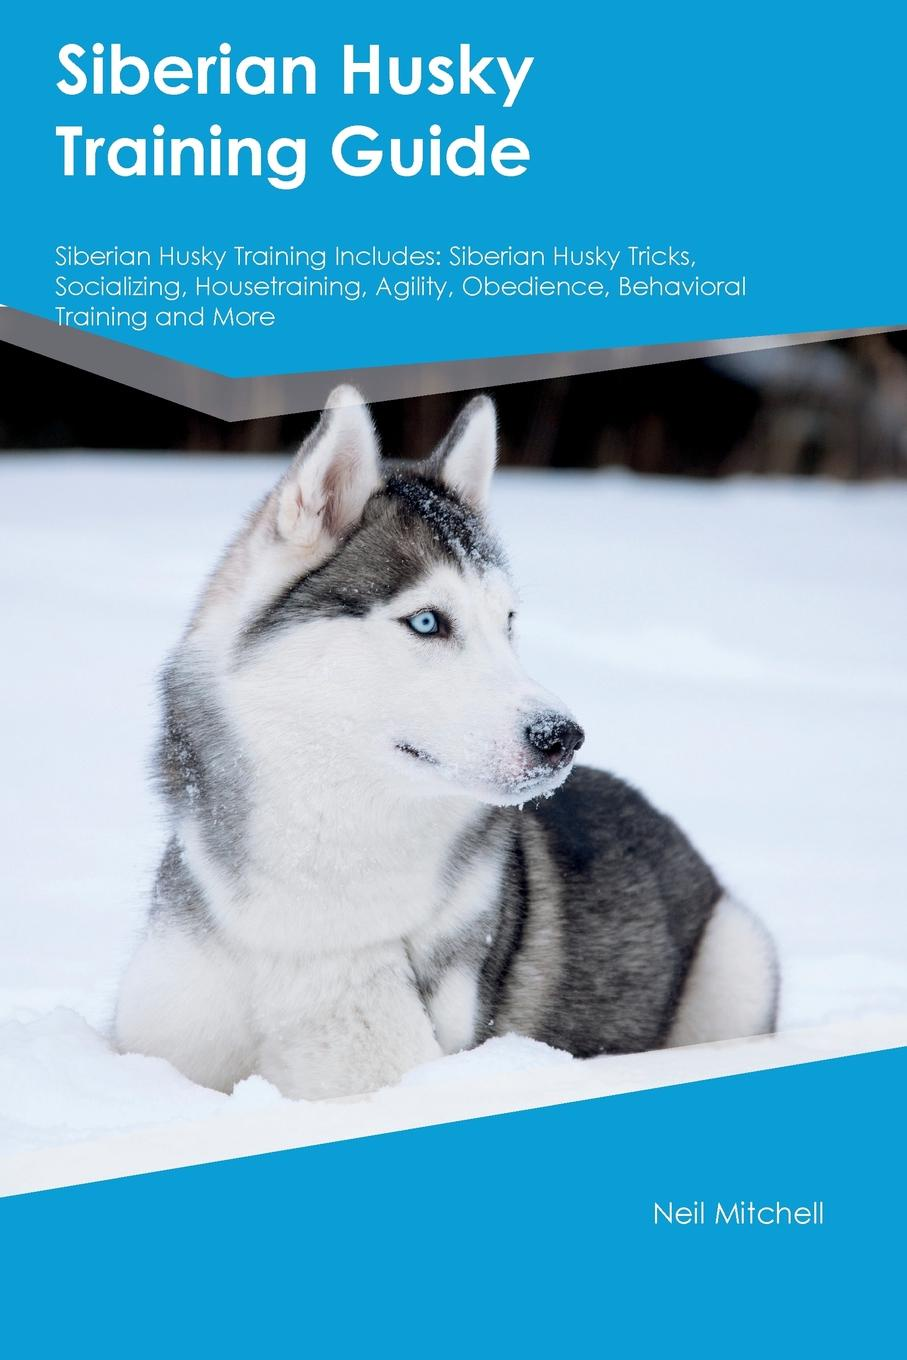 Ian Watson Siberian Husky Training Guide Siberian Husky Training Includes. Siberian Husky Tricks, Socializing, Housetraining, Agility, Obedience, Behavioral Training and More training central siberian husky tricks training siberian husky tricks games training tracker workbook includes siberian husky multi level tricks games agility part 2